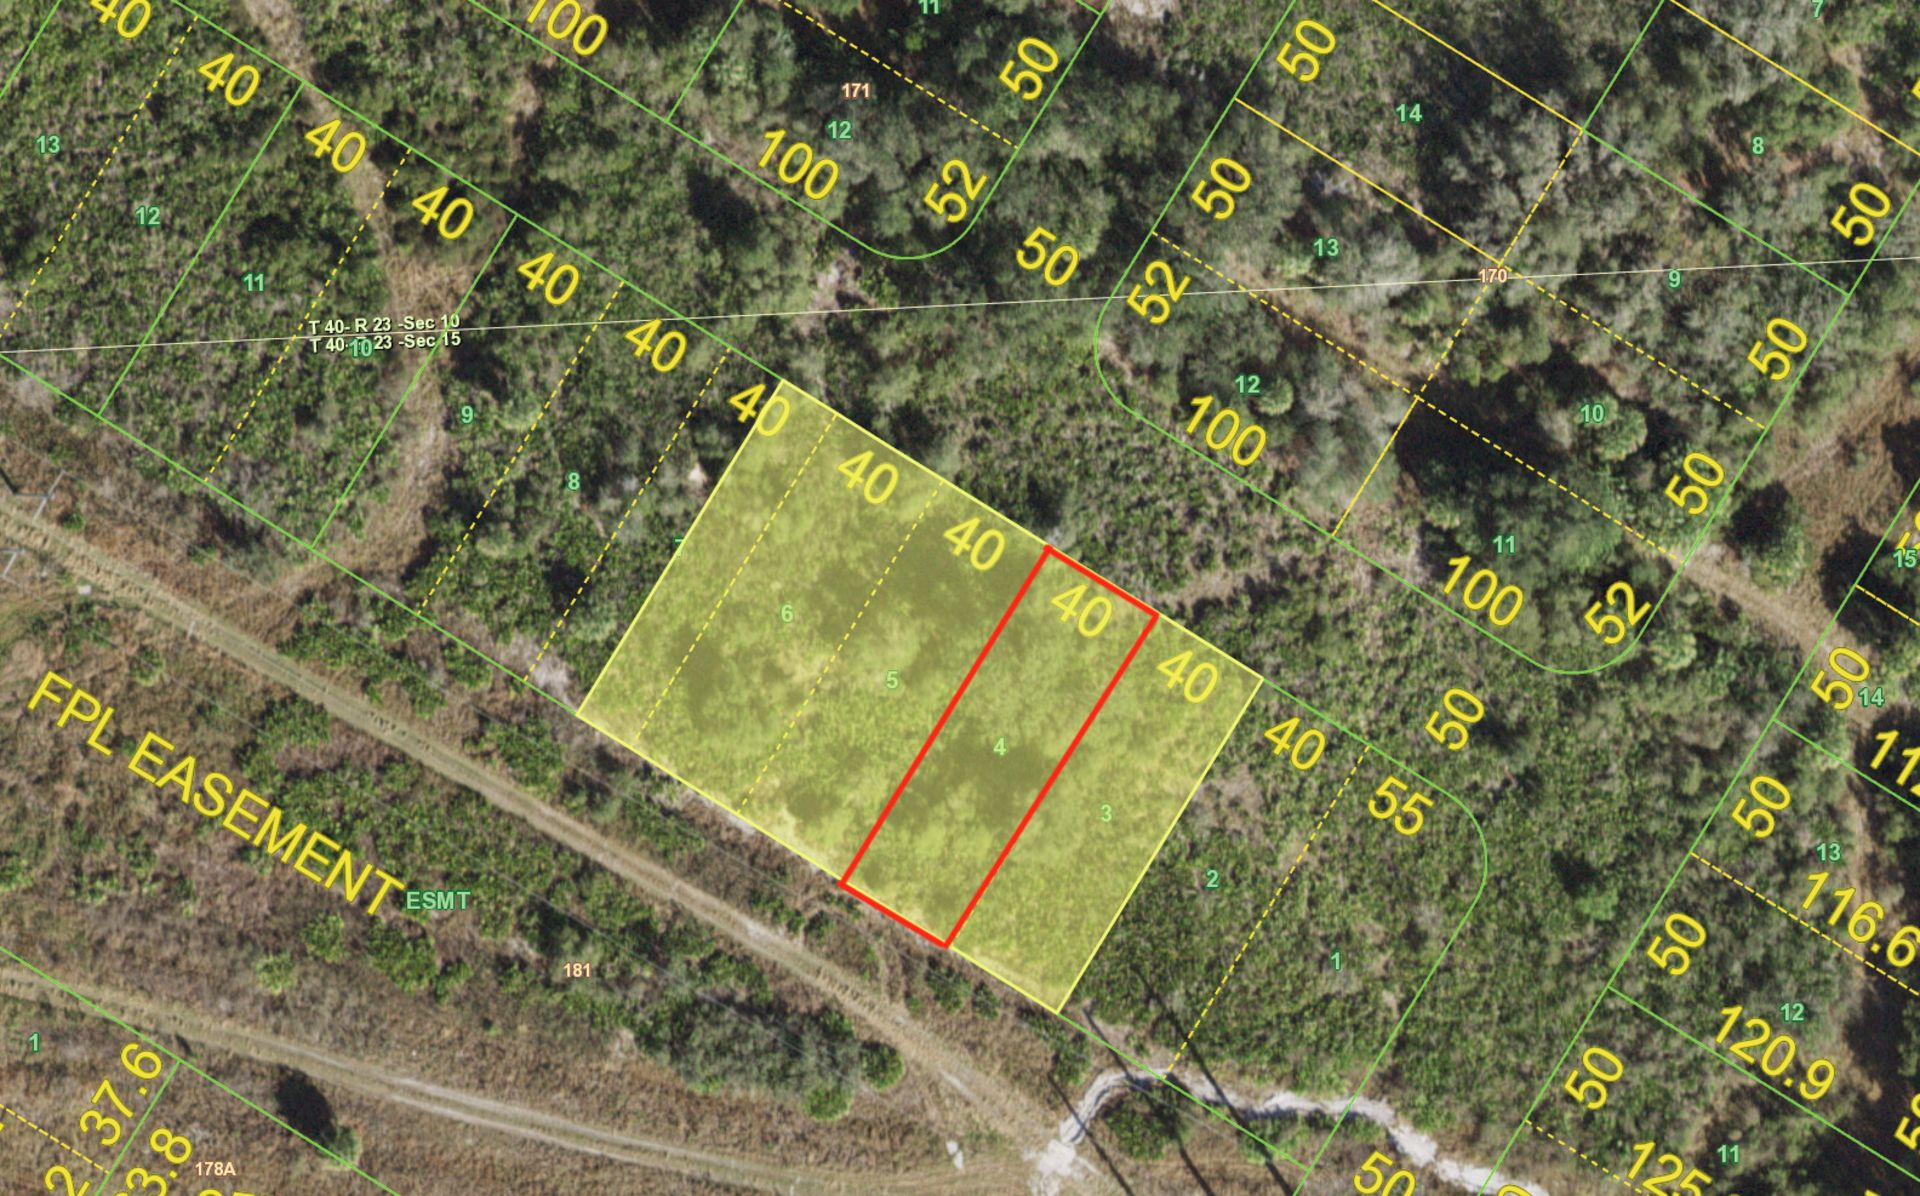 Experience the Peace River Preserve in Sunny Florida! Adjacent to Lot 17! - Image 2 of 7